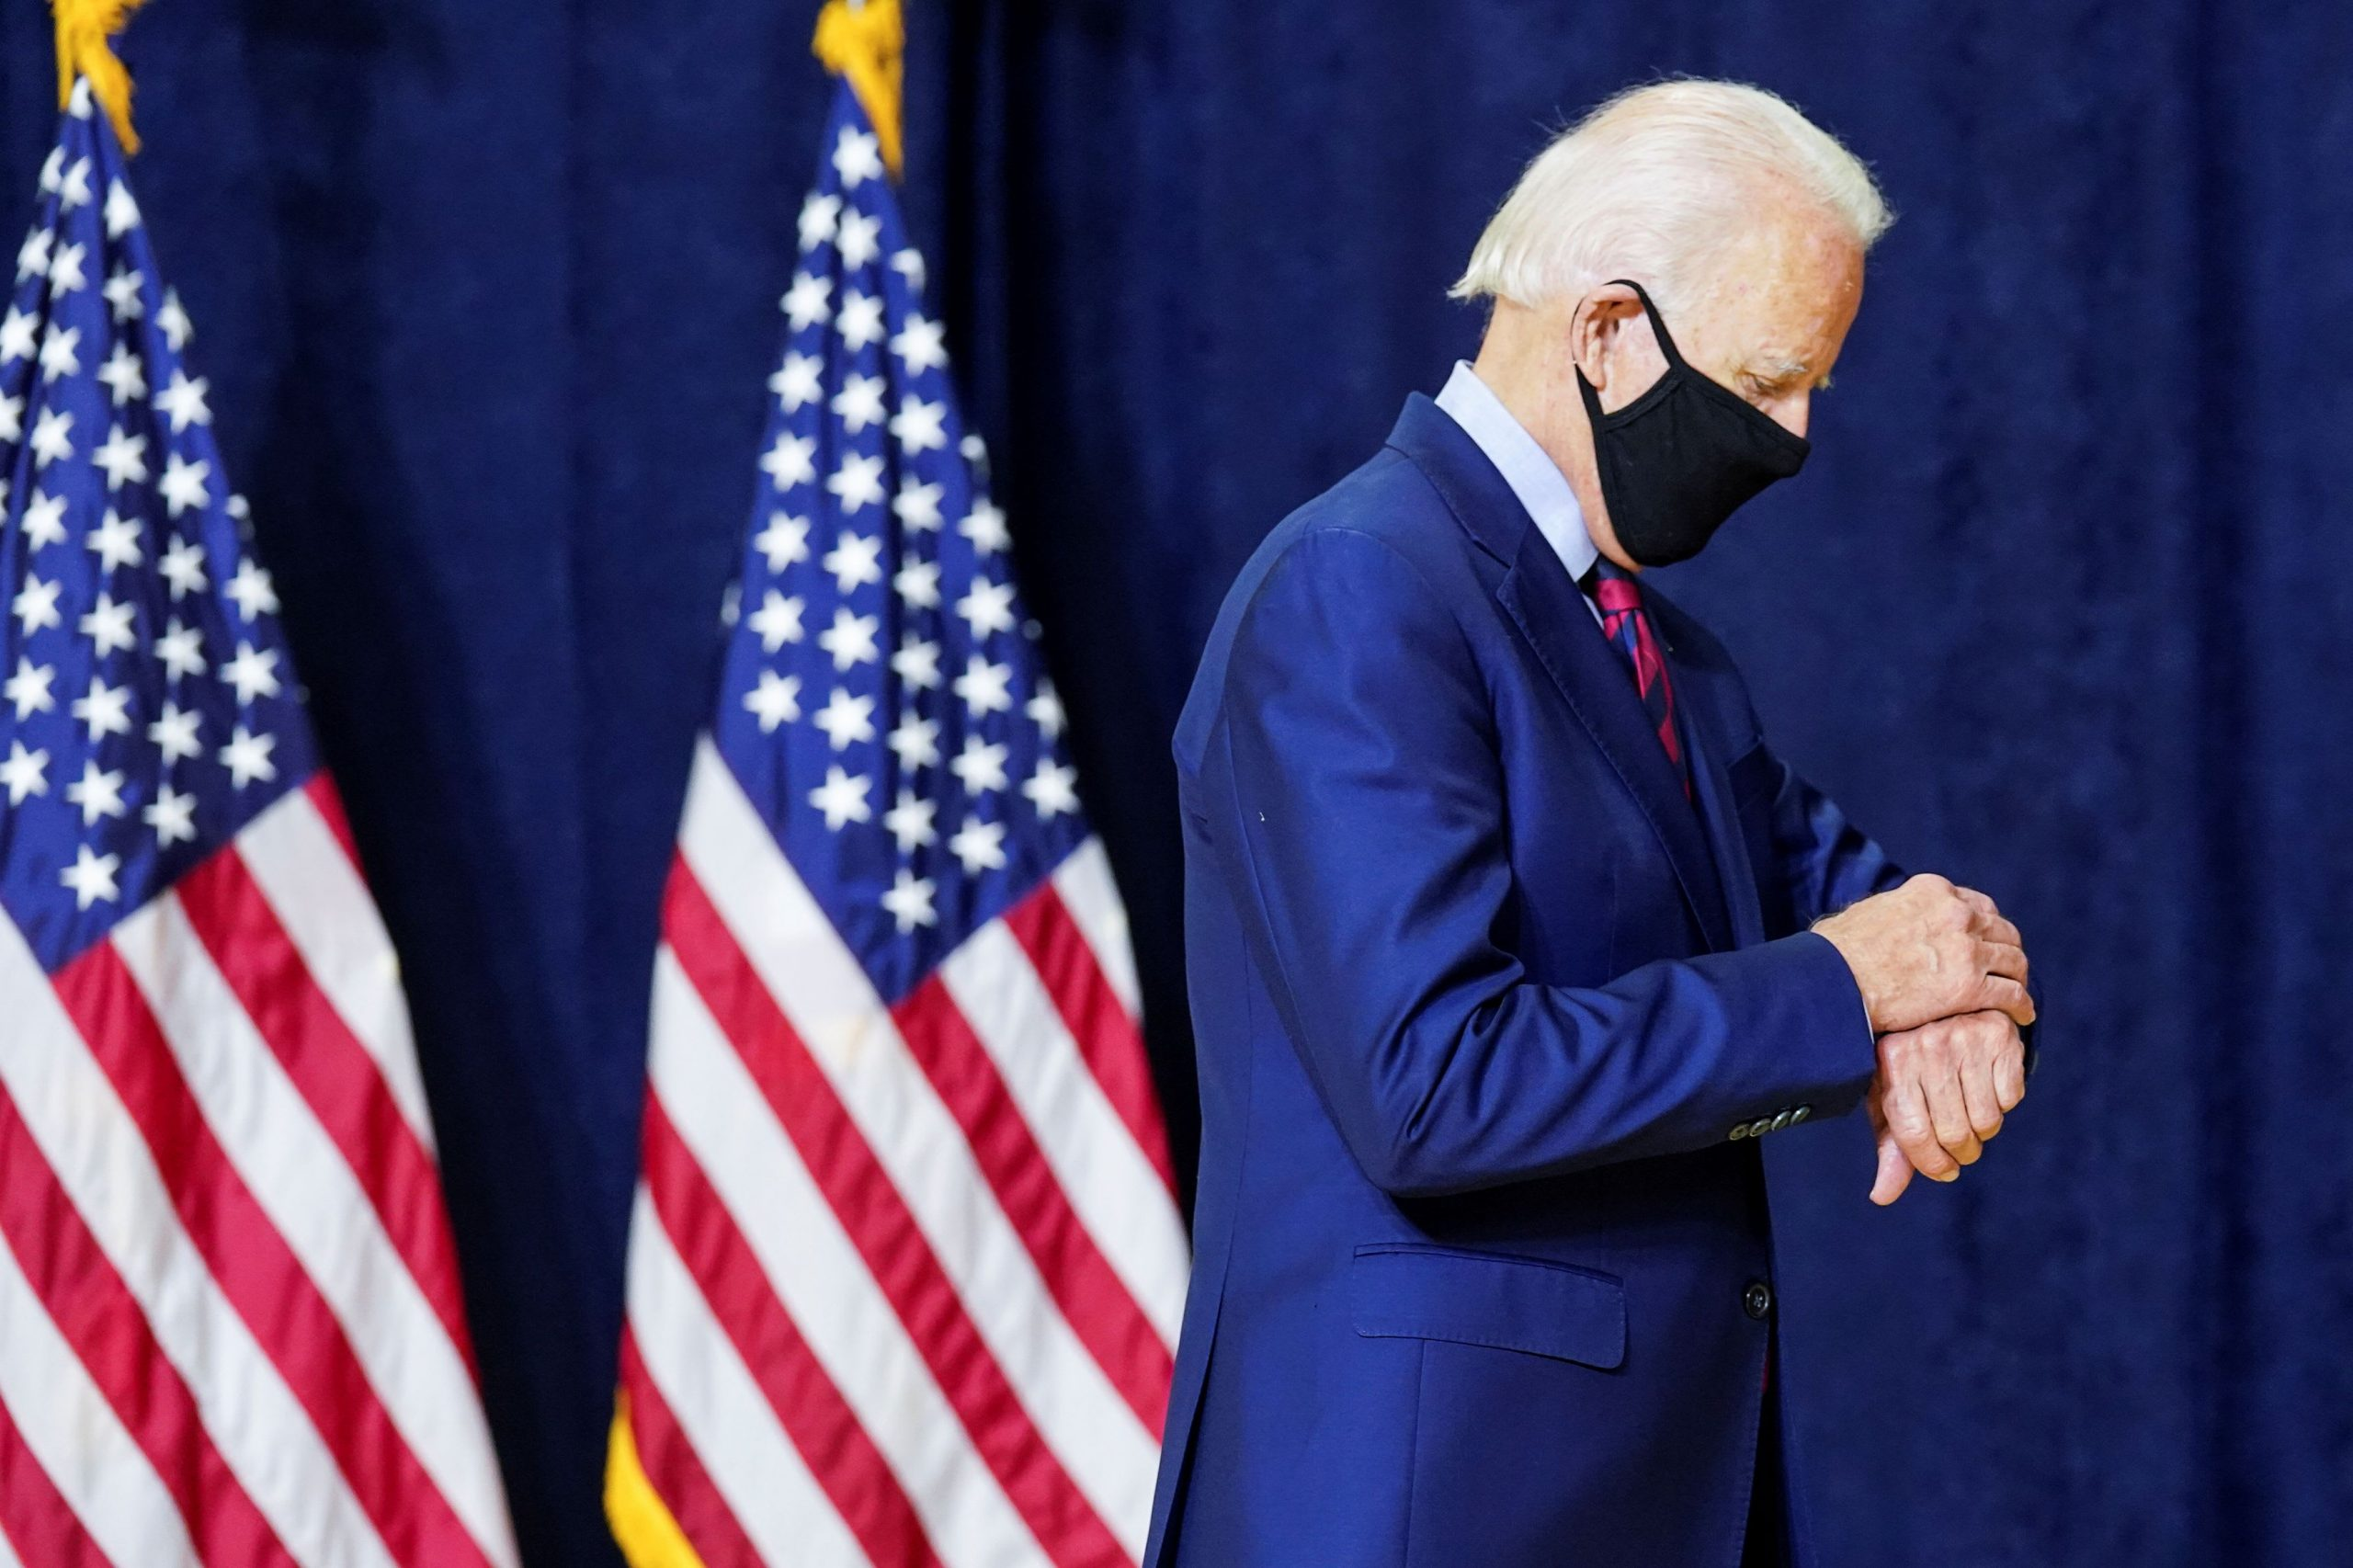 russian-state-hackers-suspected-in-targeting-biden-campaign-firm,-sources-say